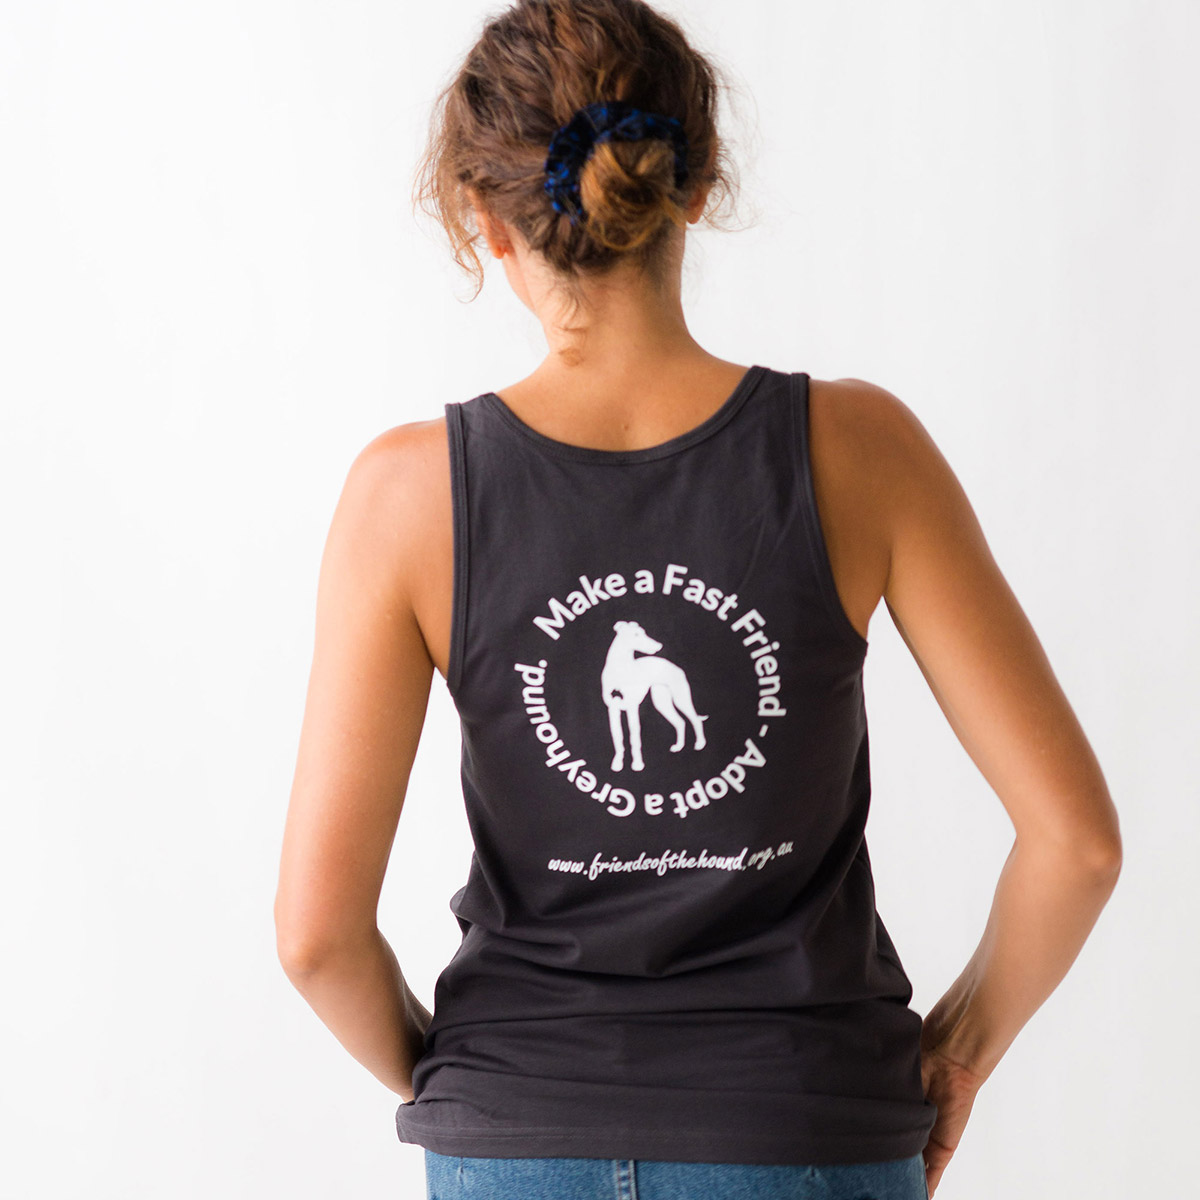 Womens greyhound singlet dark grey